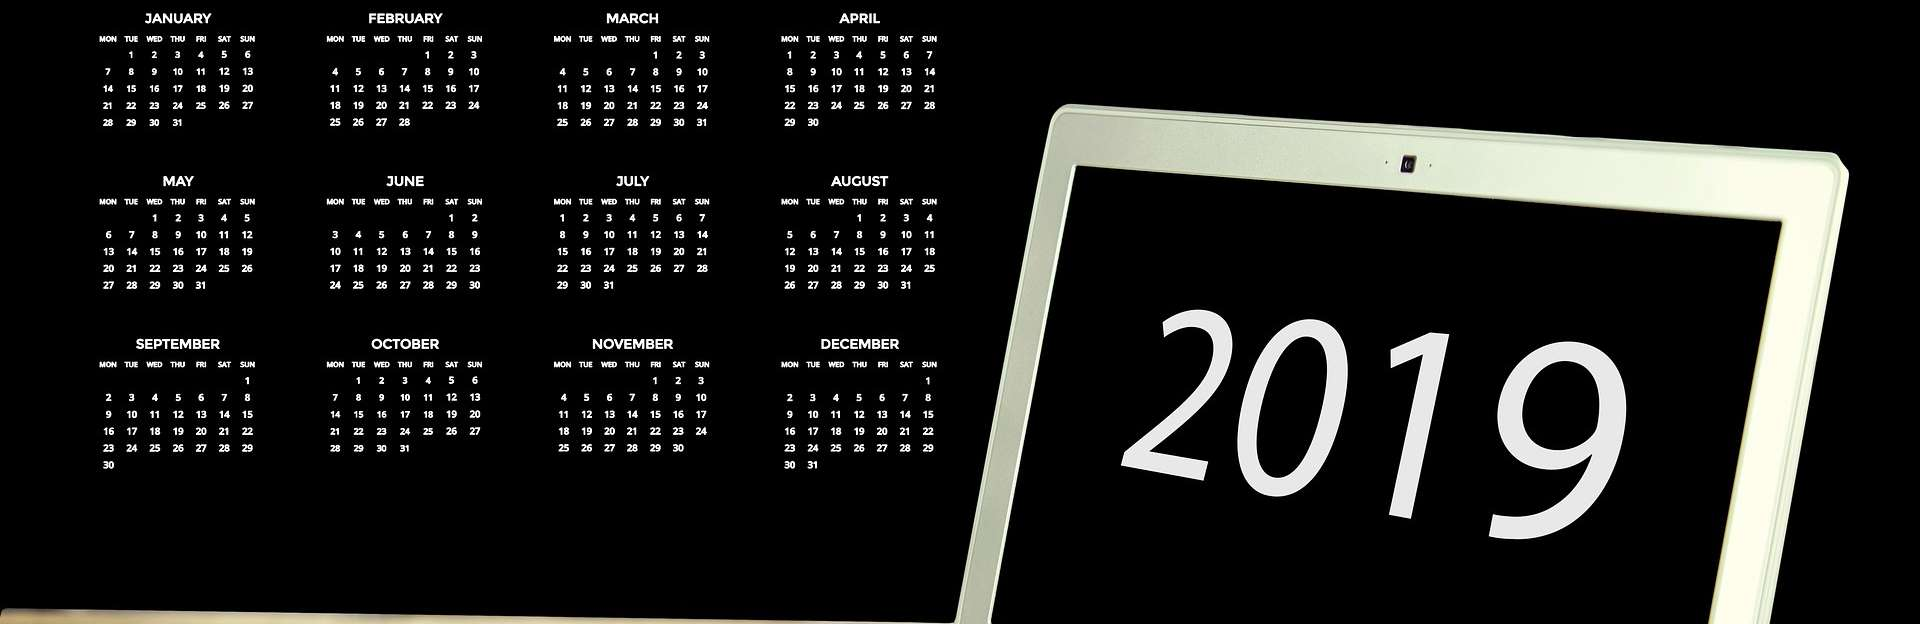 Calendrier Marketing 2019 : Les temps forts